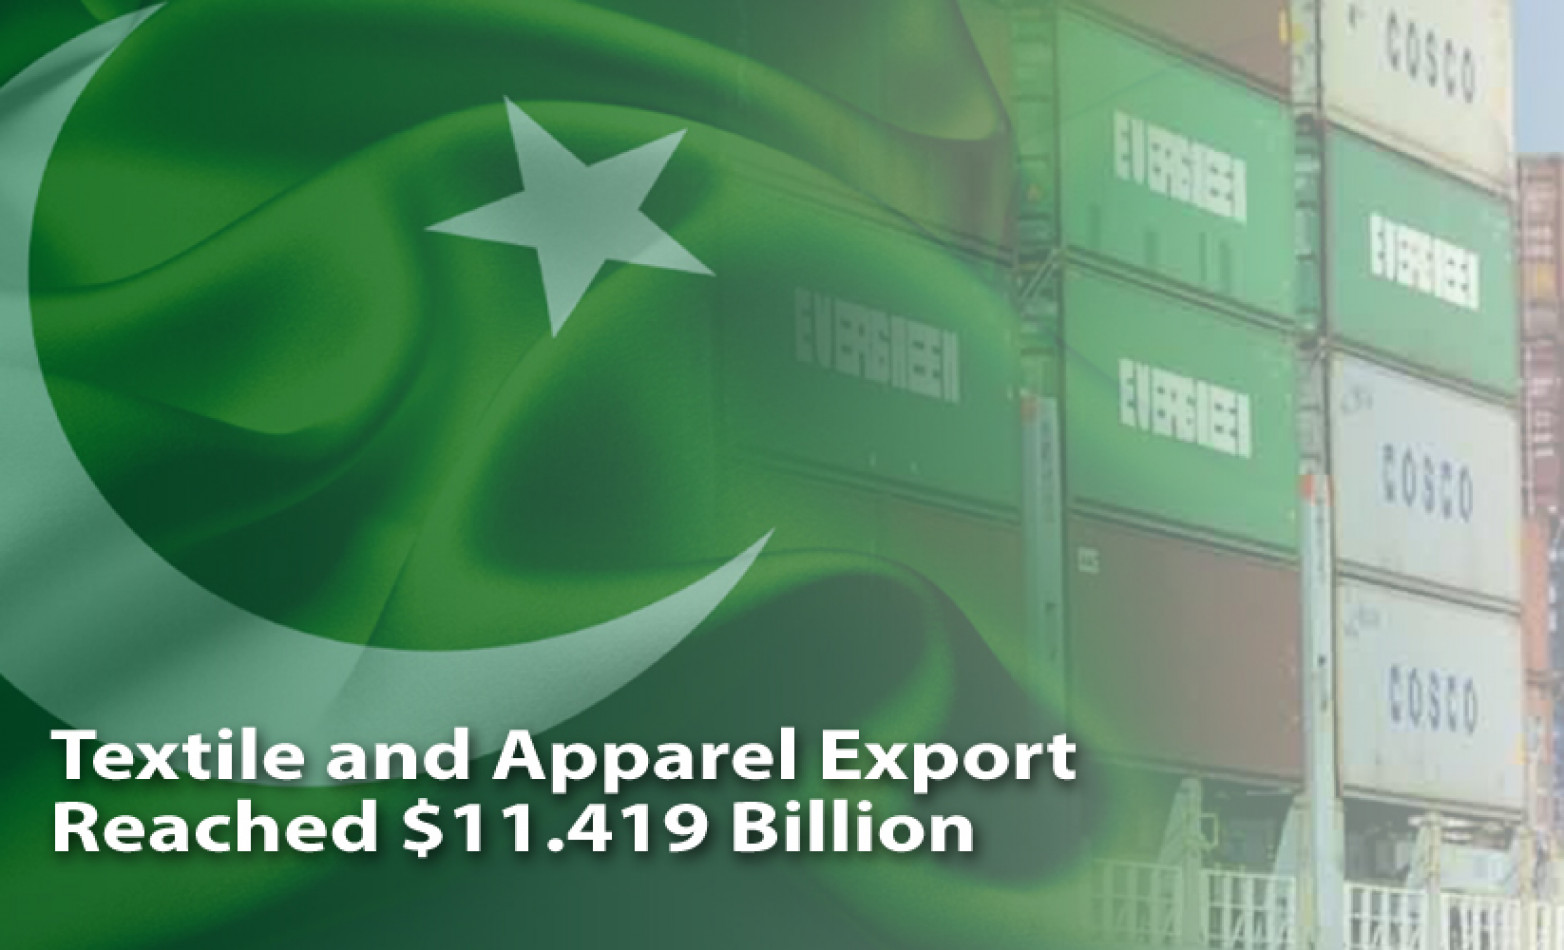 Pakistan's Textile and Apparel Export reach $11.419 Billion